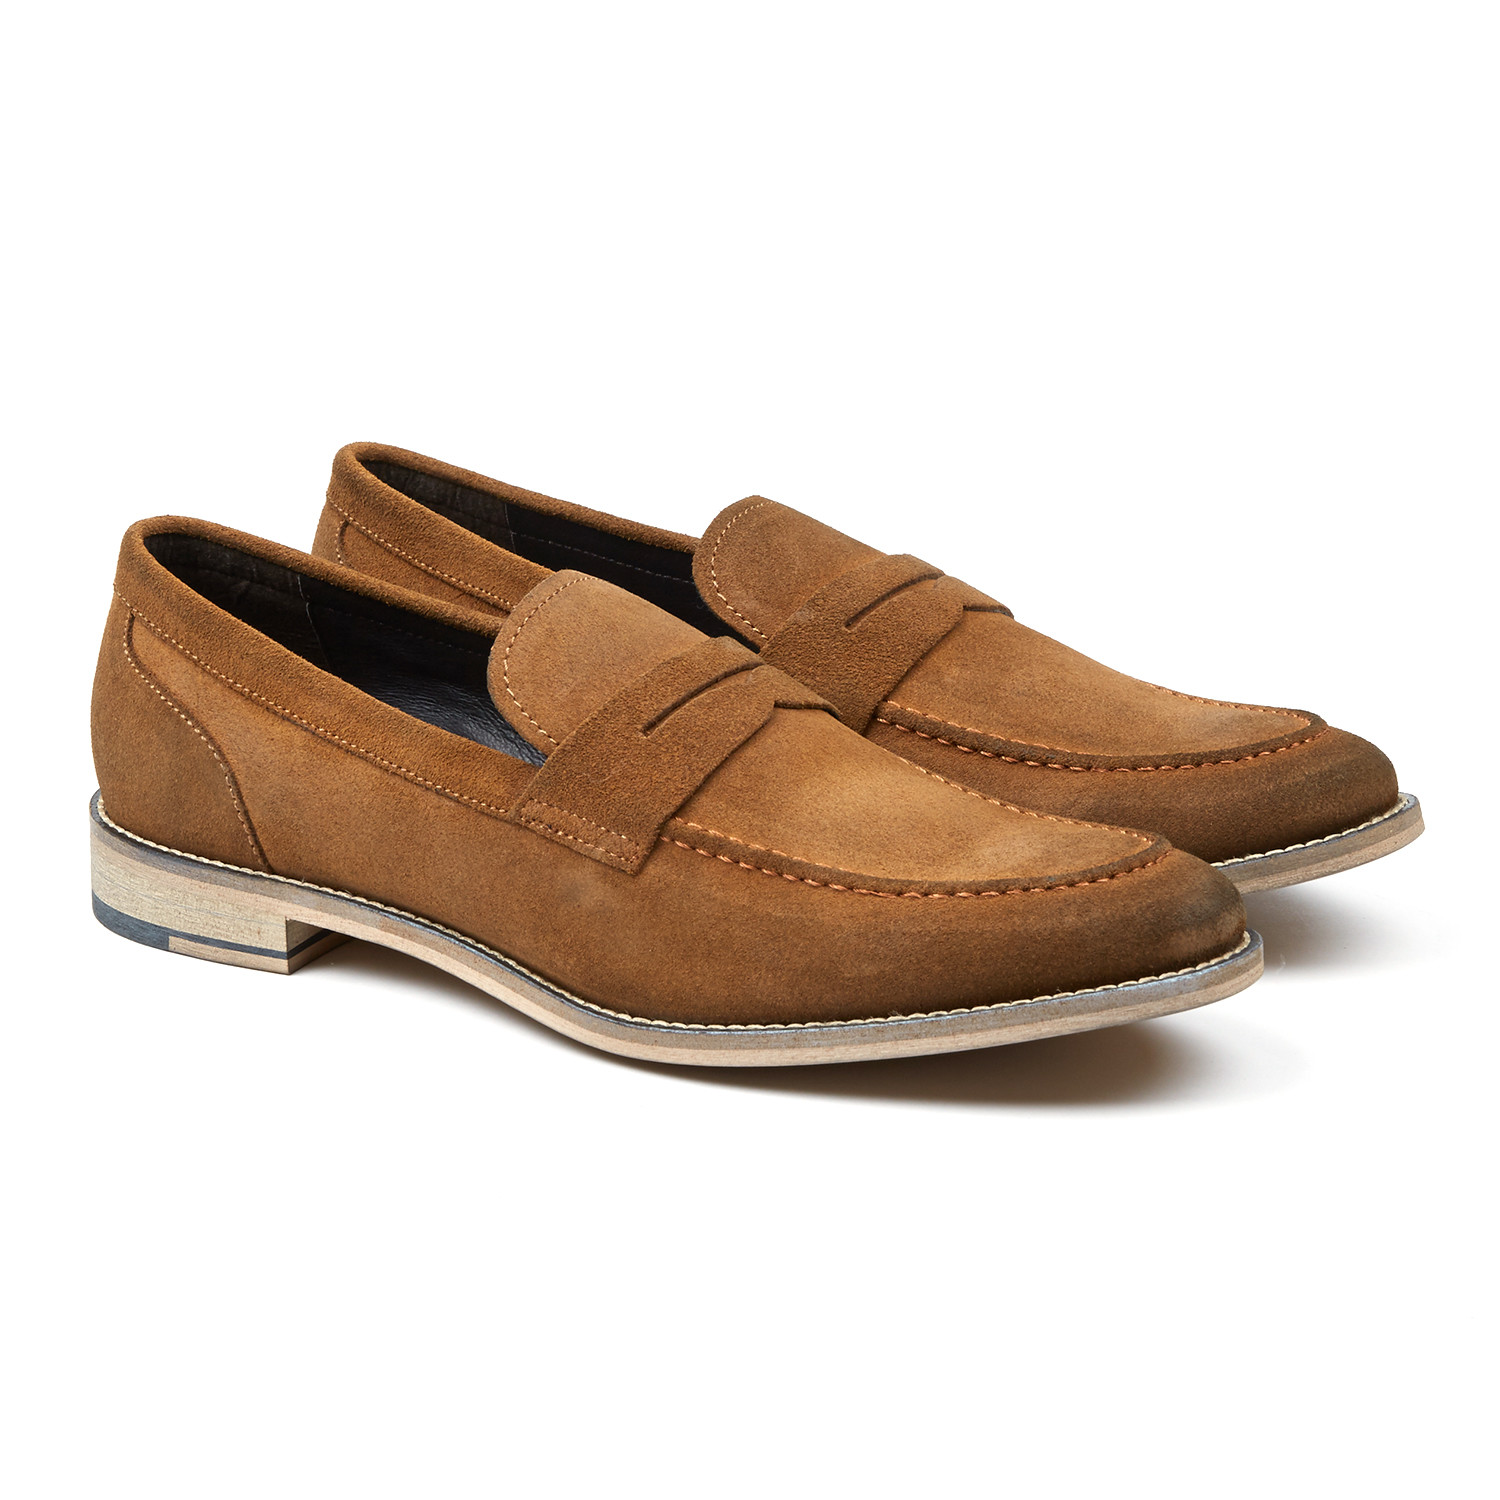 bafb59c5c8f Clark Suede Penny Loafer    Tan (US  10) - GORDON RUSH - Touch of Modern